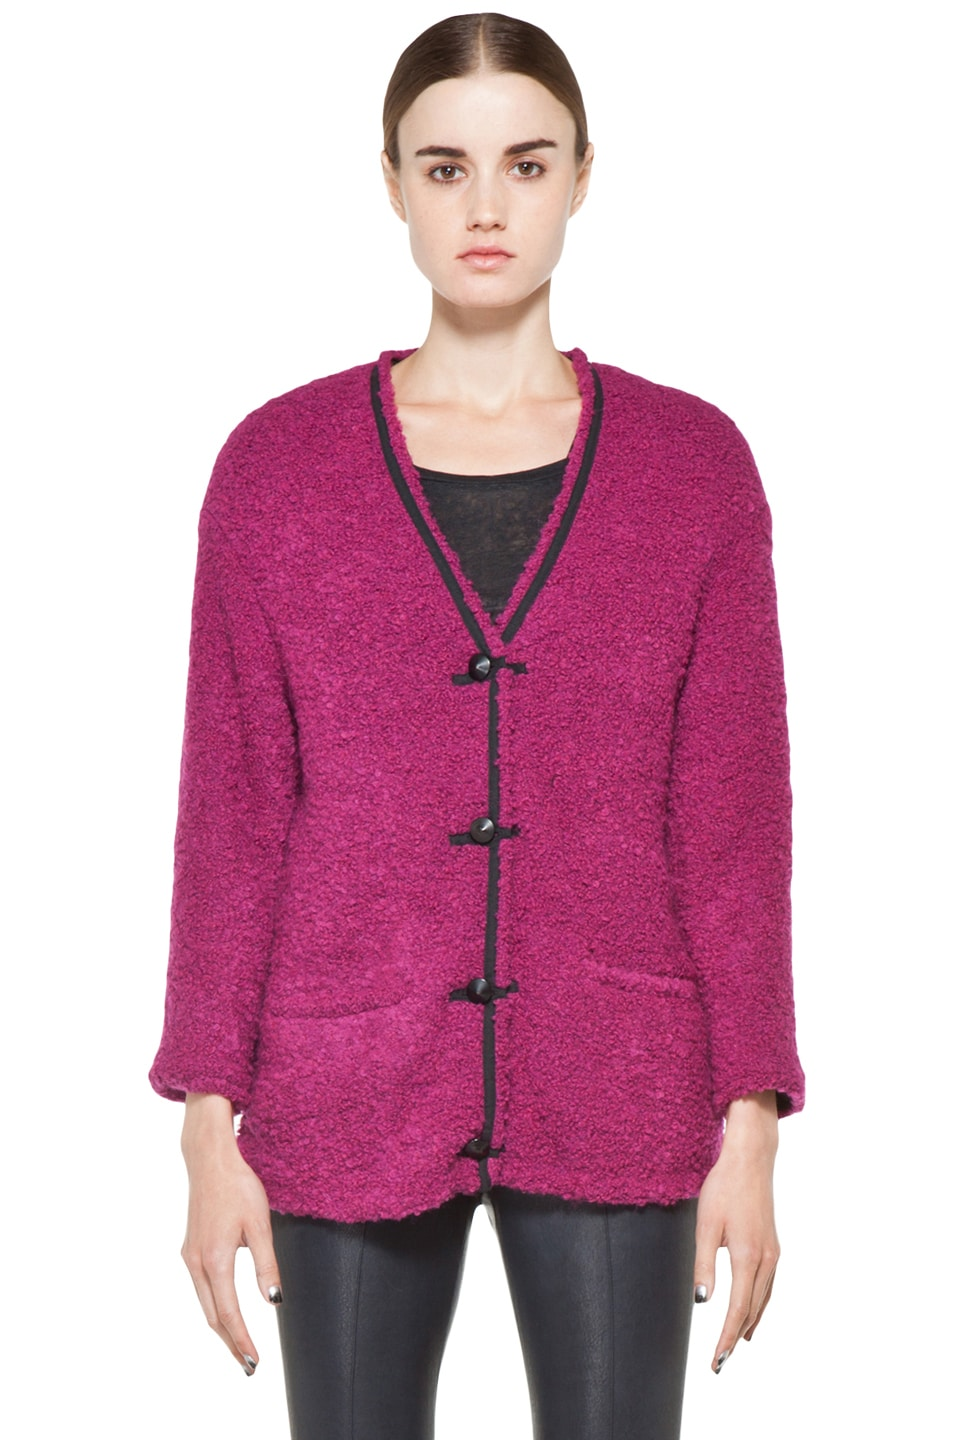 Image 1 of Kelly Wearstler Looped Boucle Seattle Jacket in Fuchsia